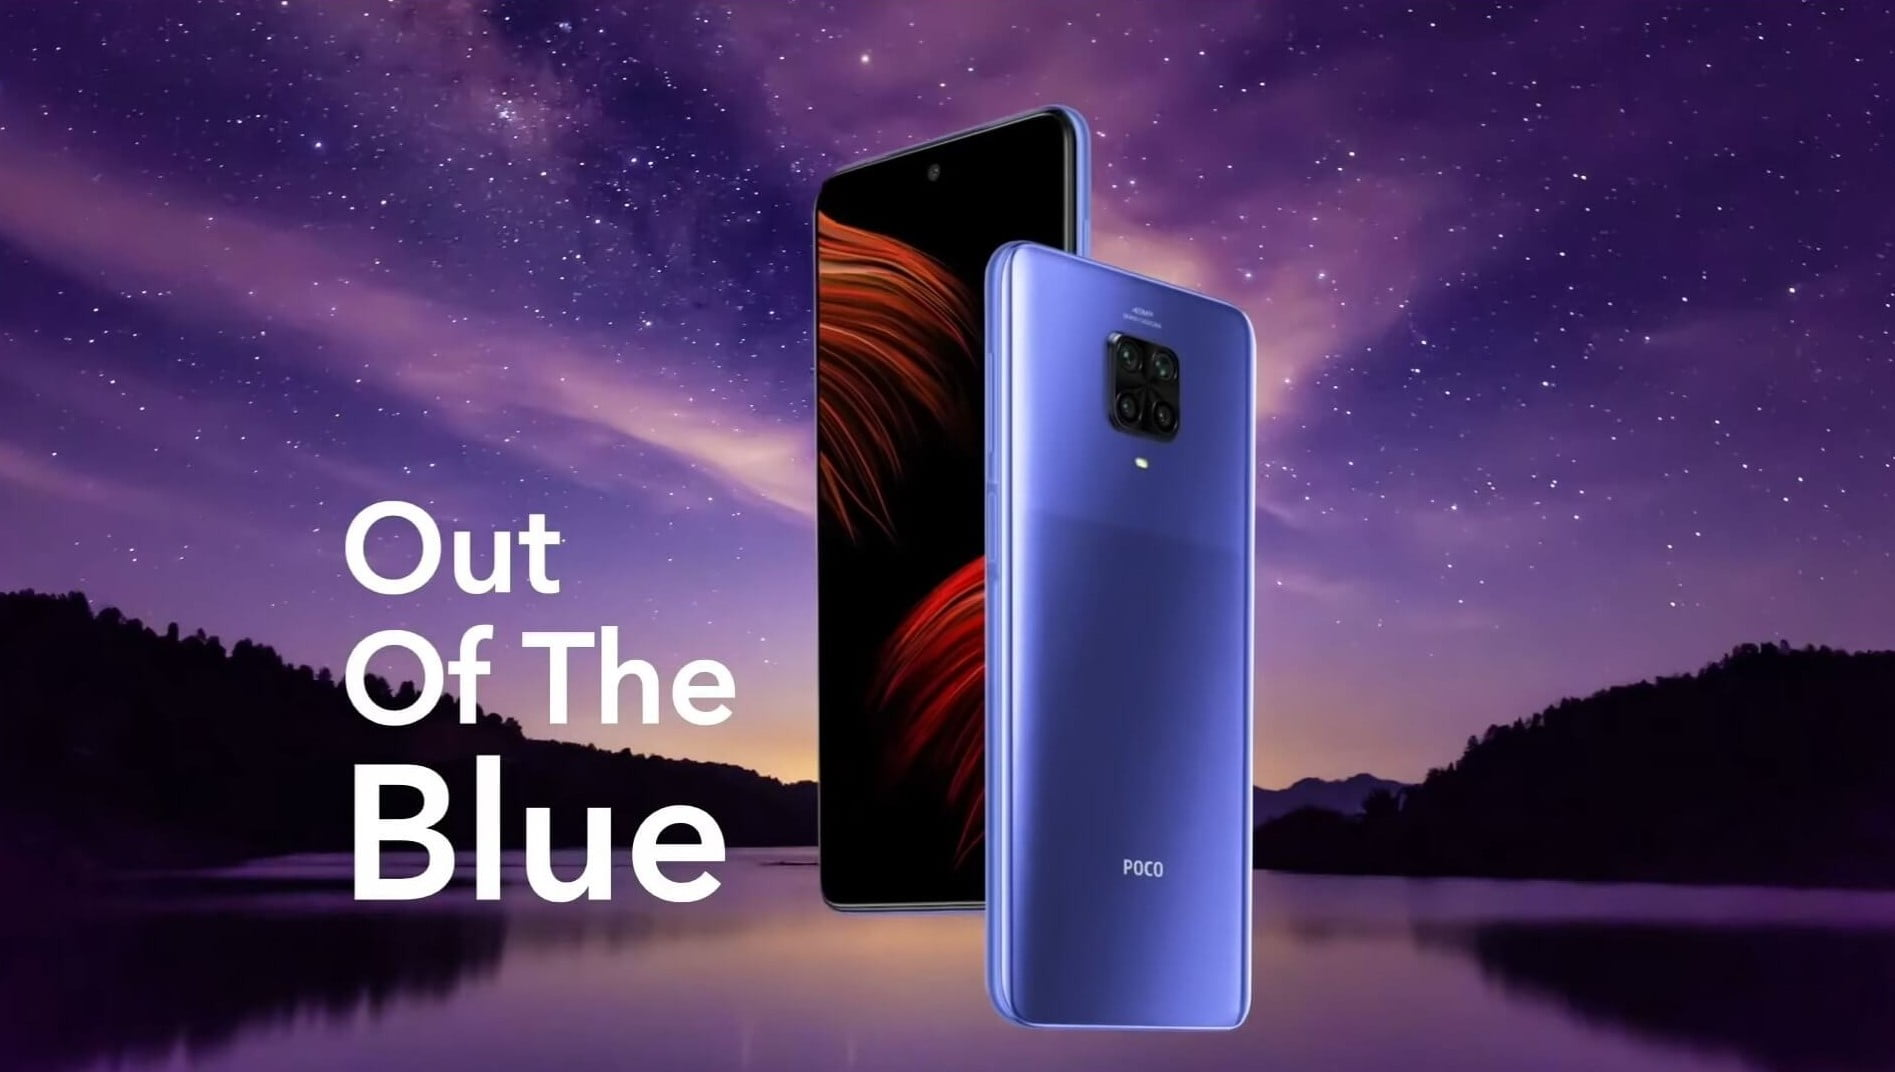 POCO-M2-PRO-OUT-OF-THE-BLUE